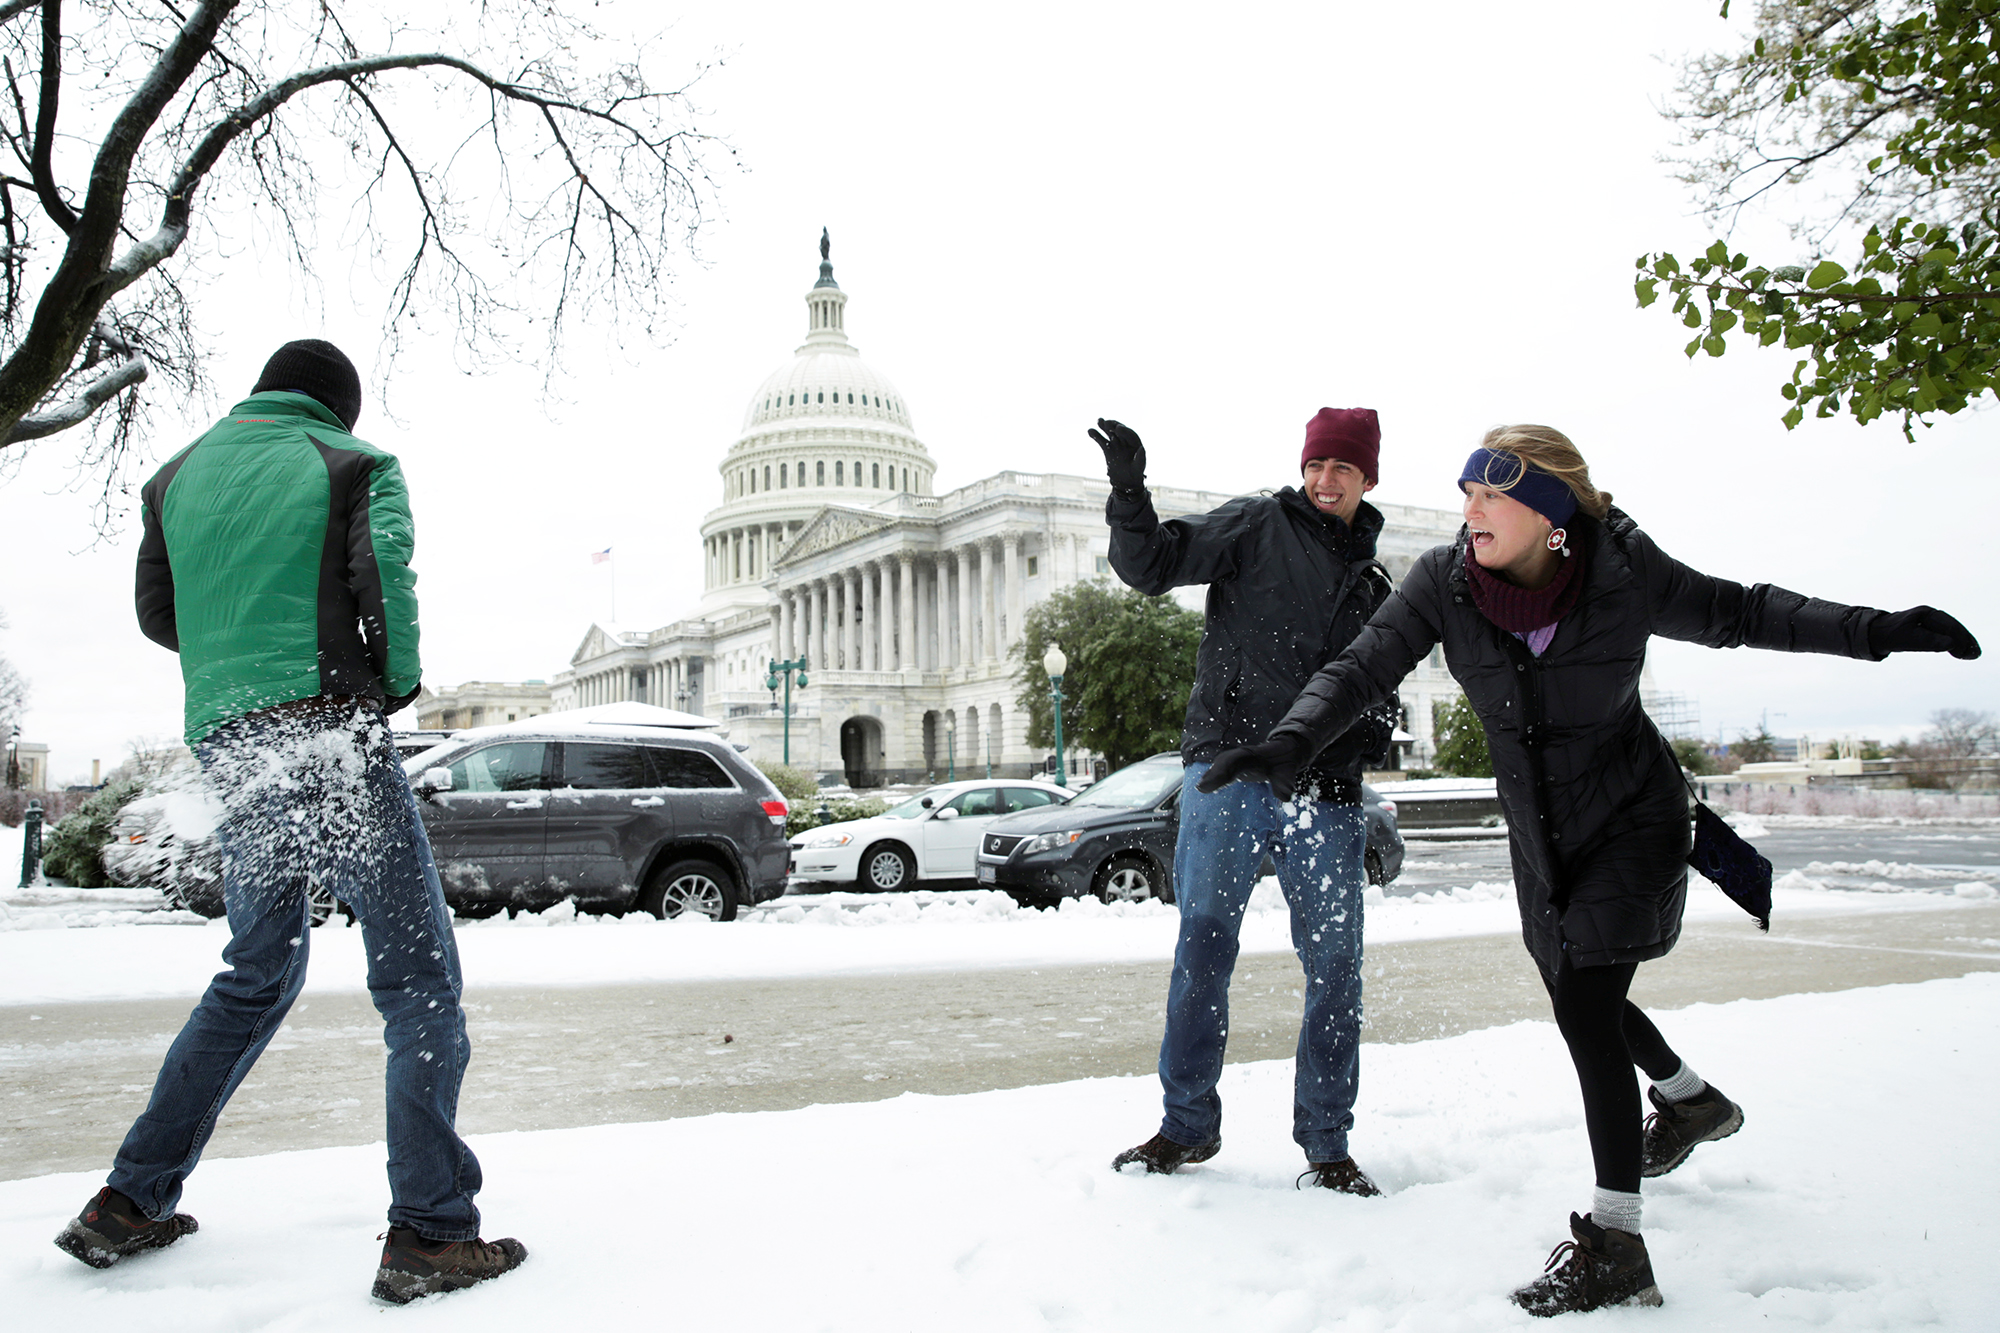 Tourists Jake Lambert, Clay Lambert and Kelsey Chaloux from Orlando, Fla. play snowball on Capitol Hill in Washington, D.C., on March 14, 2017.